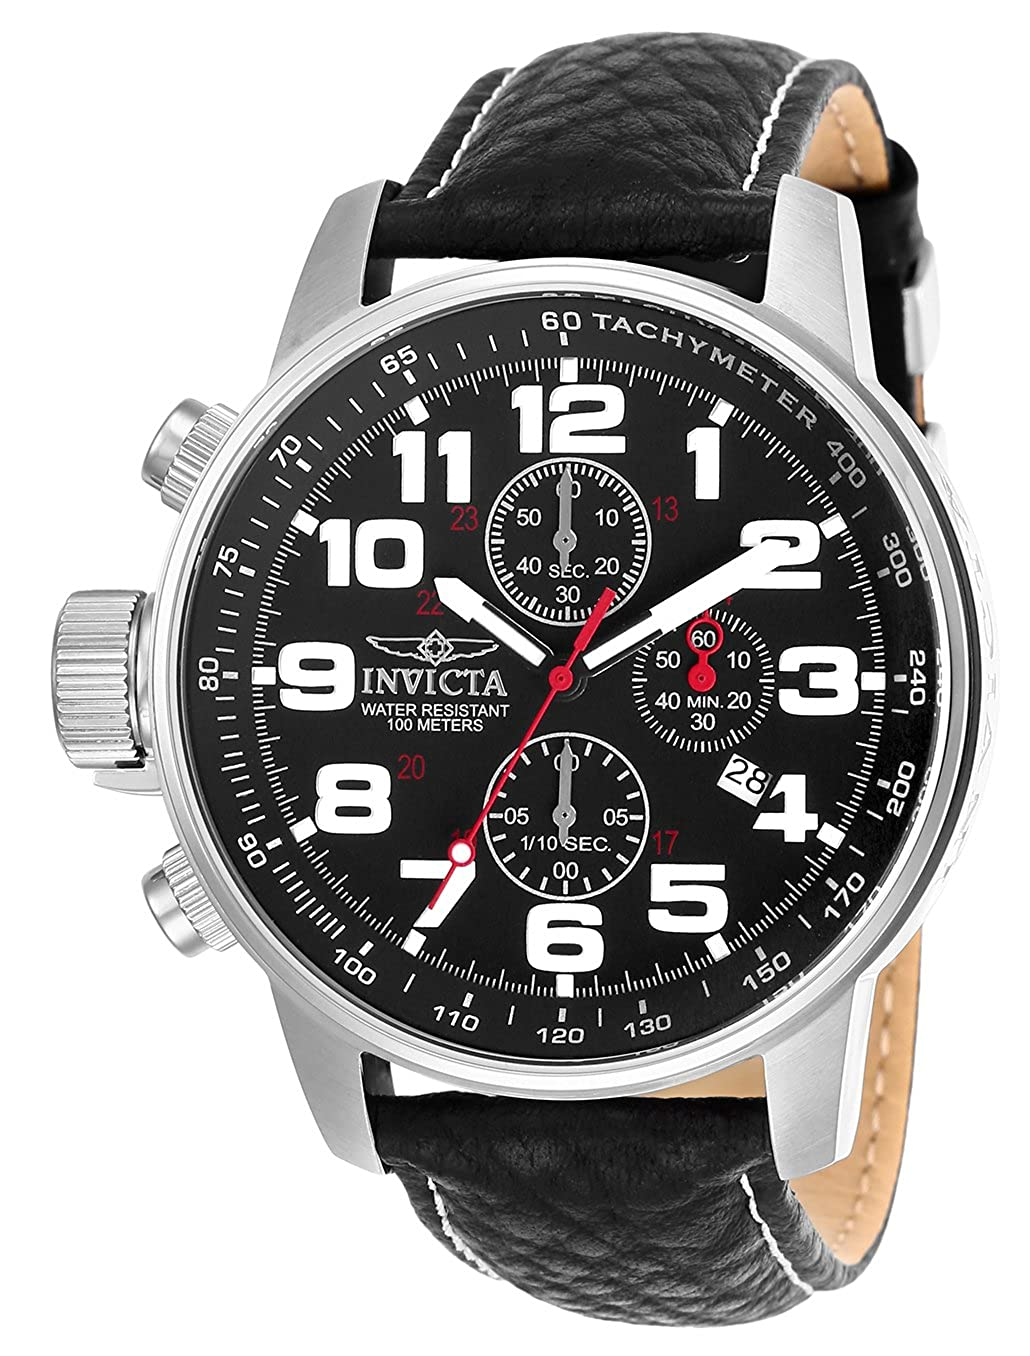 Invicta Men s 2770 Force Collection Stainless Steel Left-Handed Watch With Black-Leather Strap